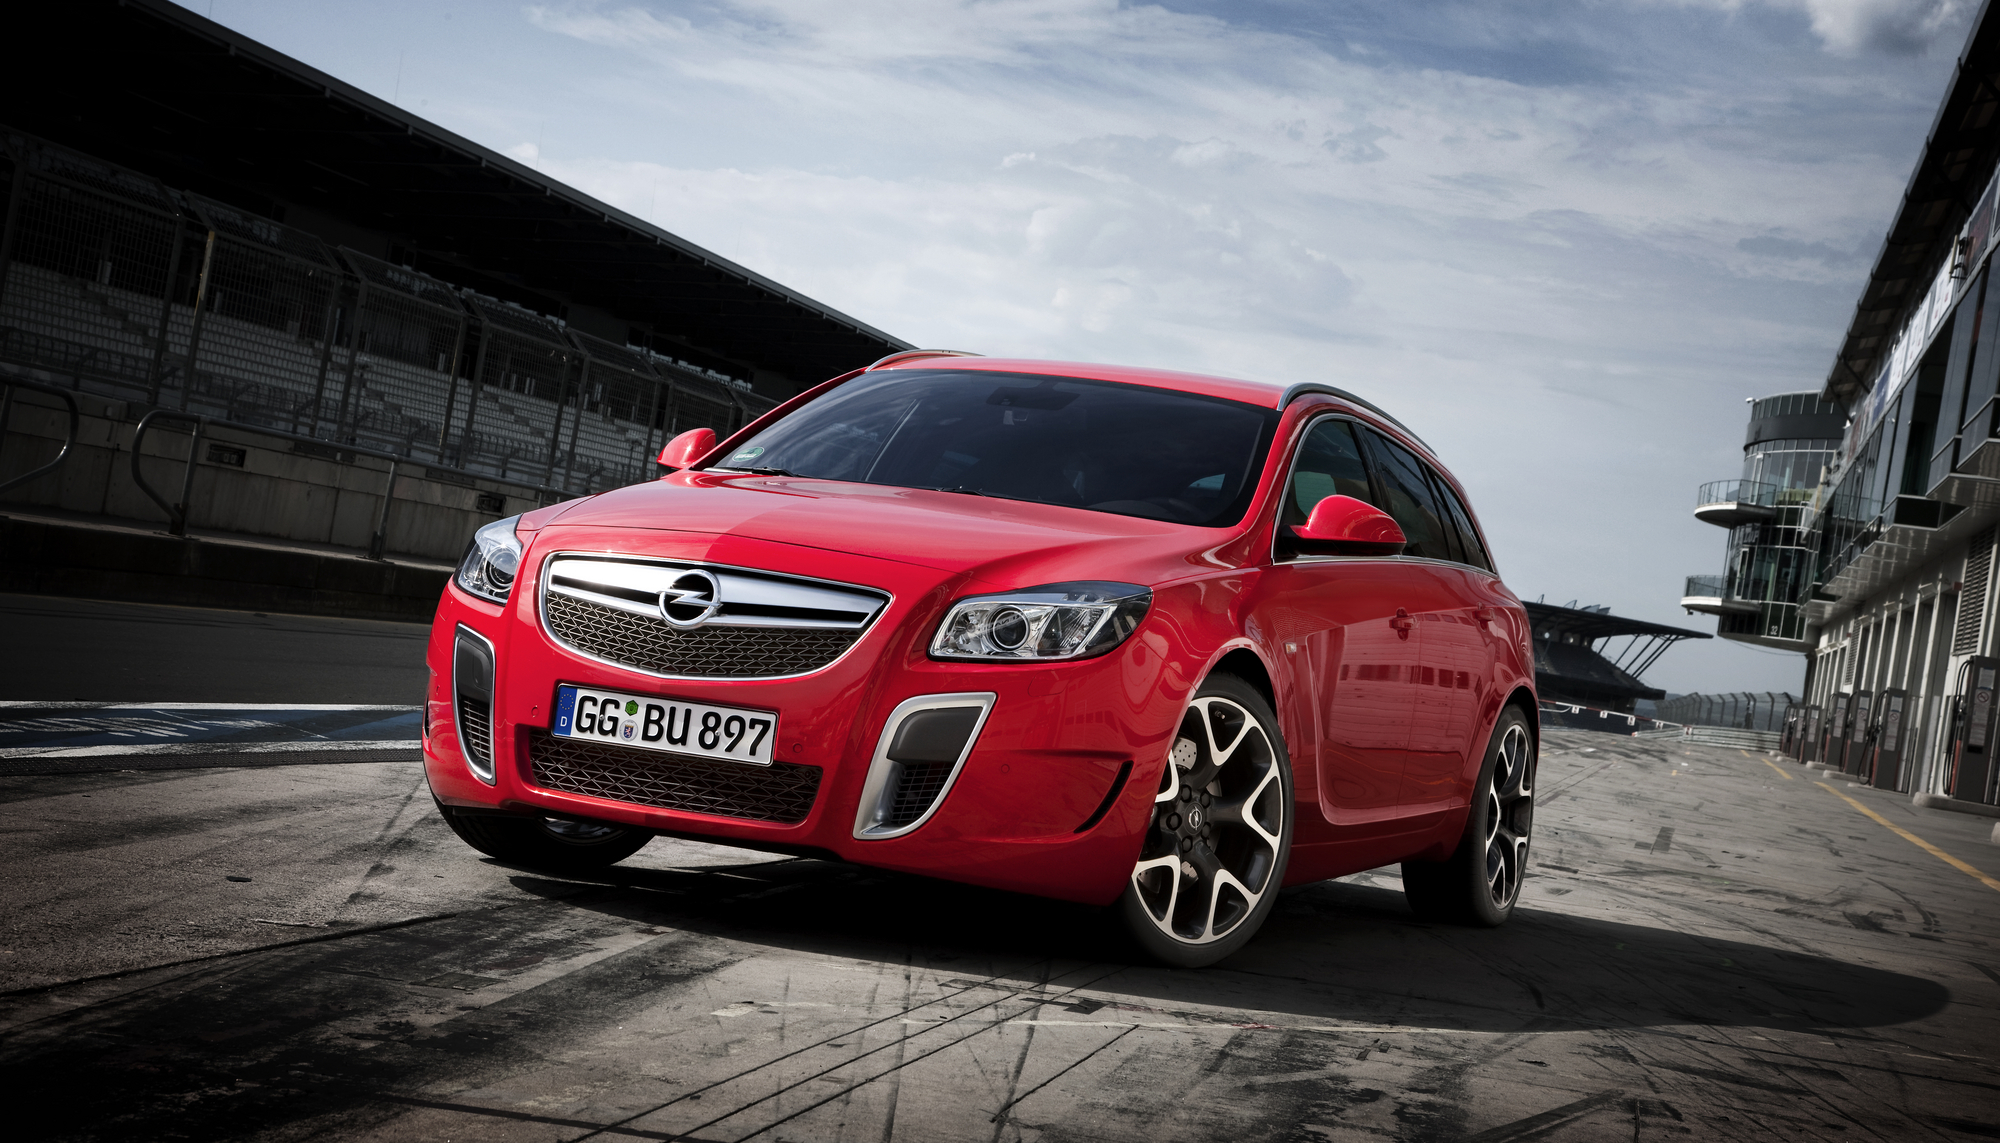 Opel Plans New And Sporty Insignia For 2015 :: News :: autoviva.com